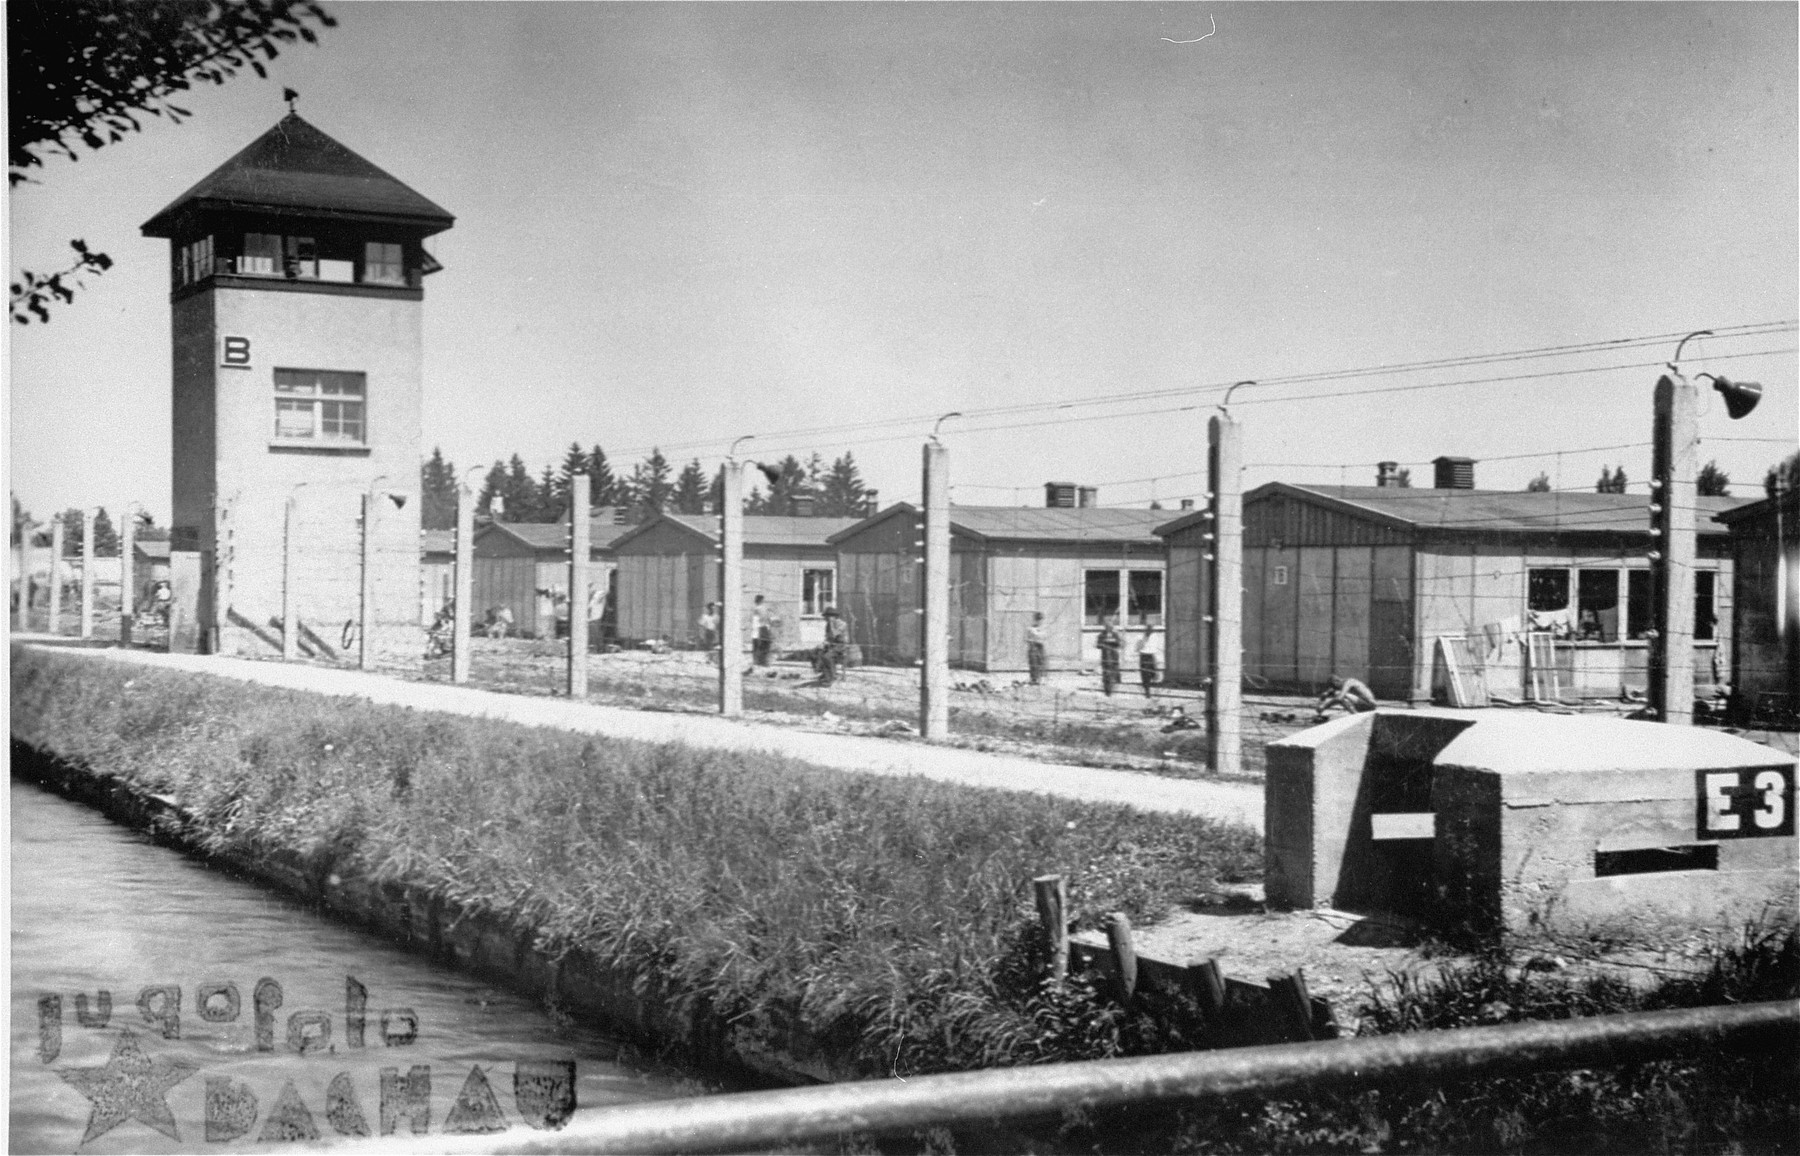 A view of the electrified barbed wire fence, the moat and the watch tower in Dachau.